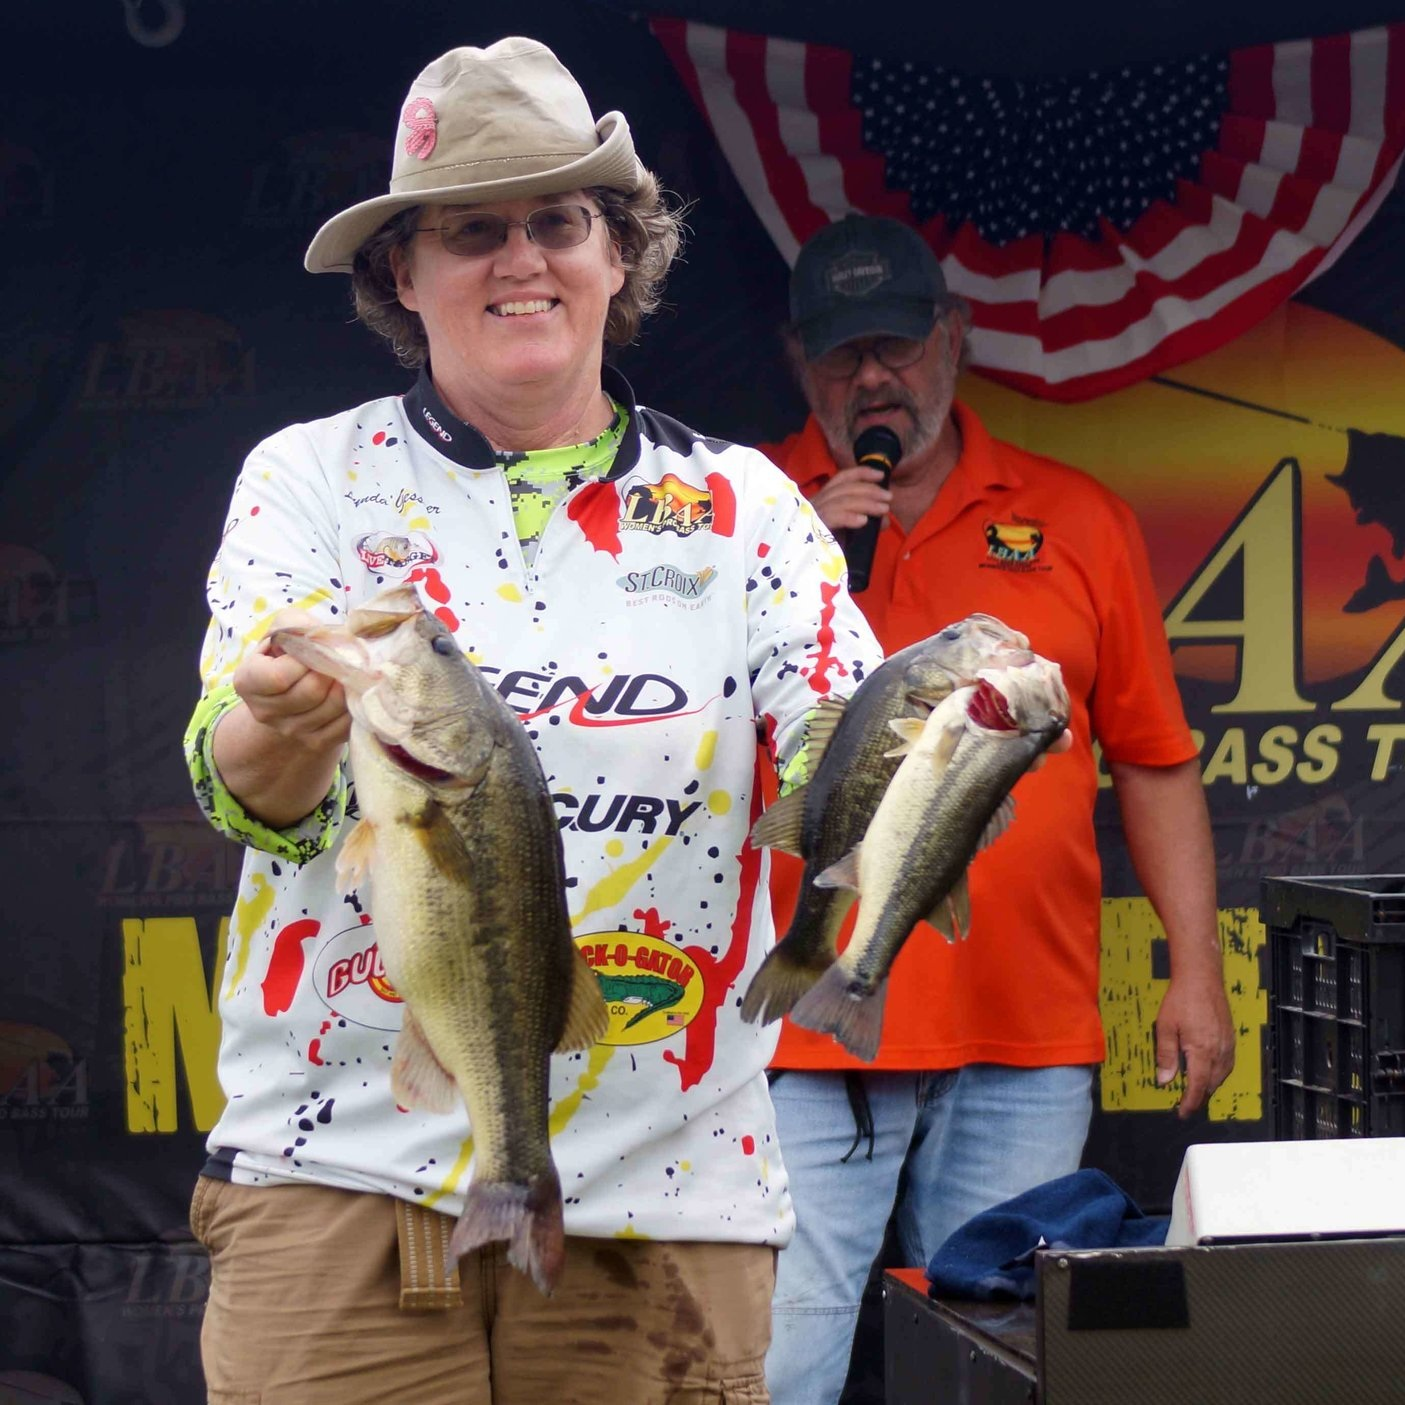 Lynda Gessner shows off some prize-winning fish at a recent LBAA event. - Photo Courtesy of: LBAA